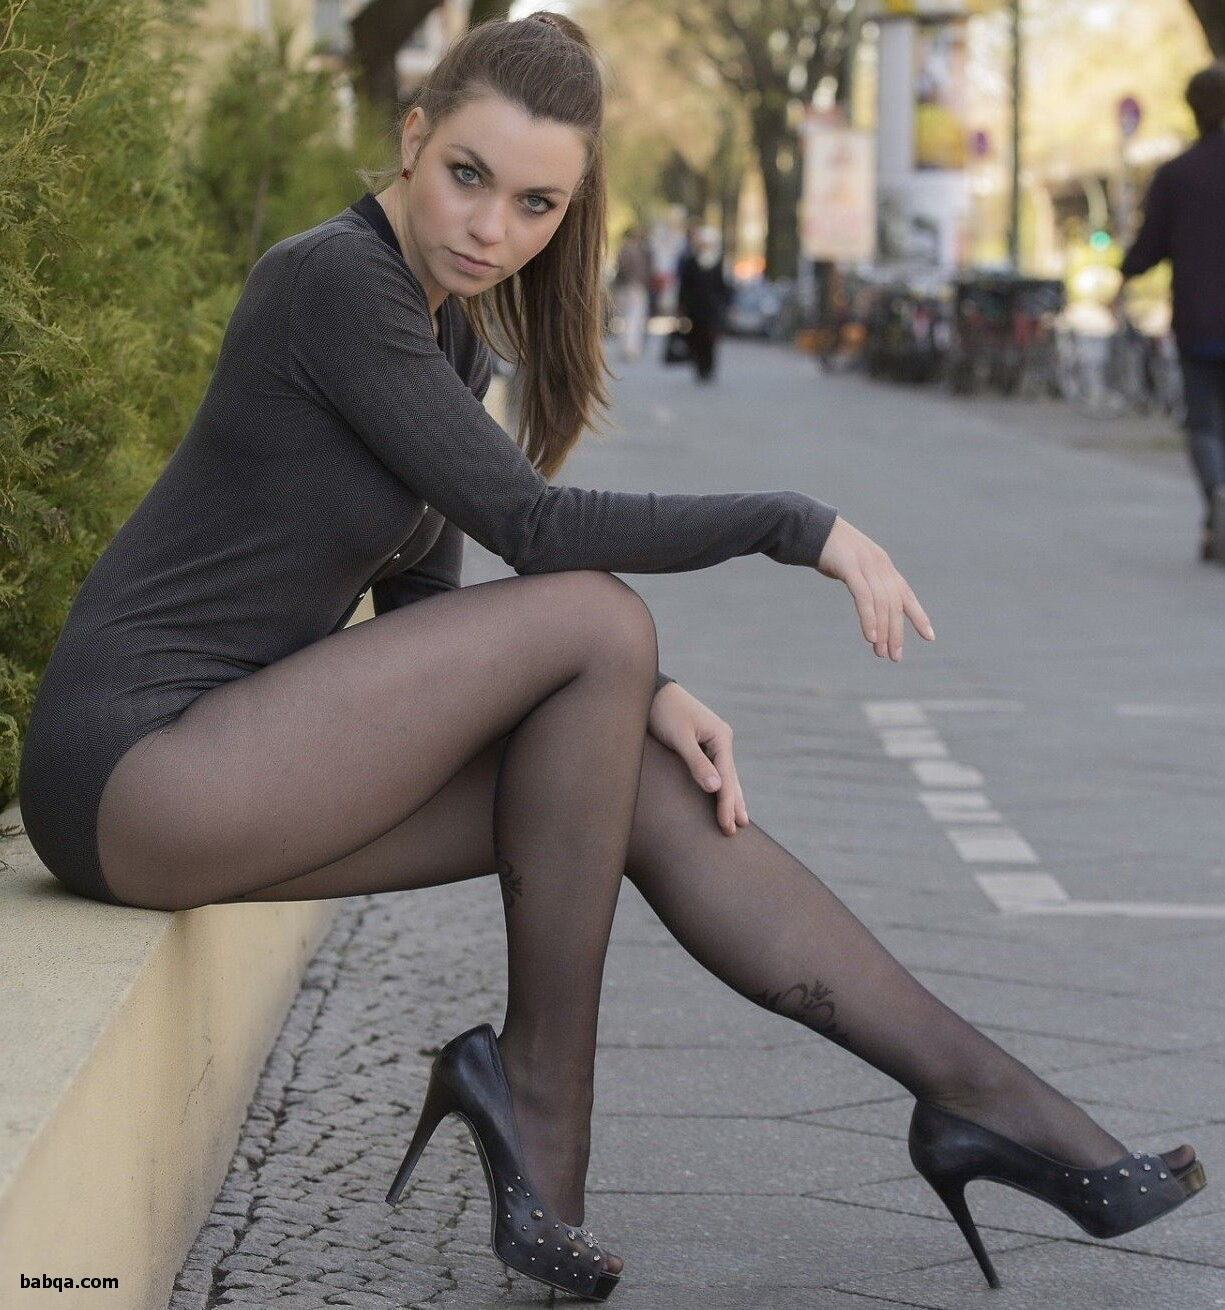 hottest womens underwear and girls in blue stockings